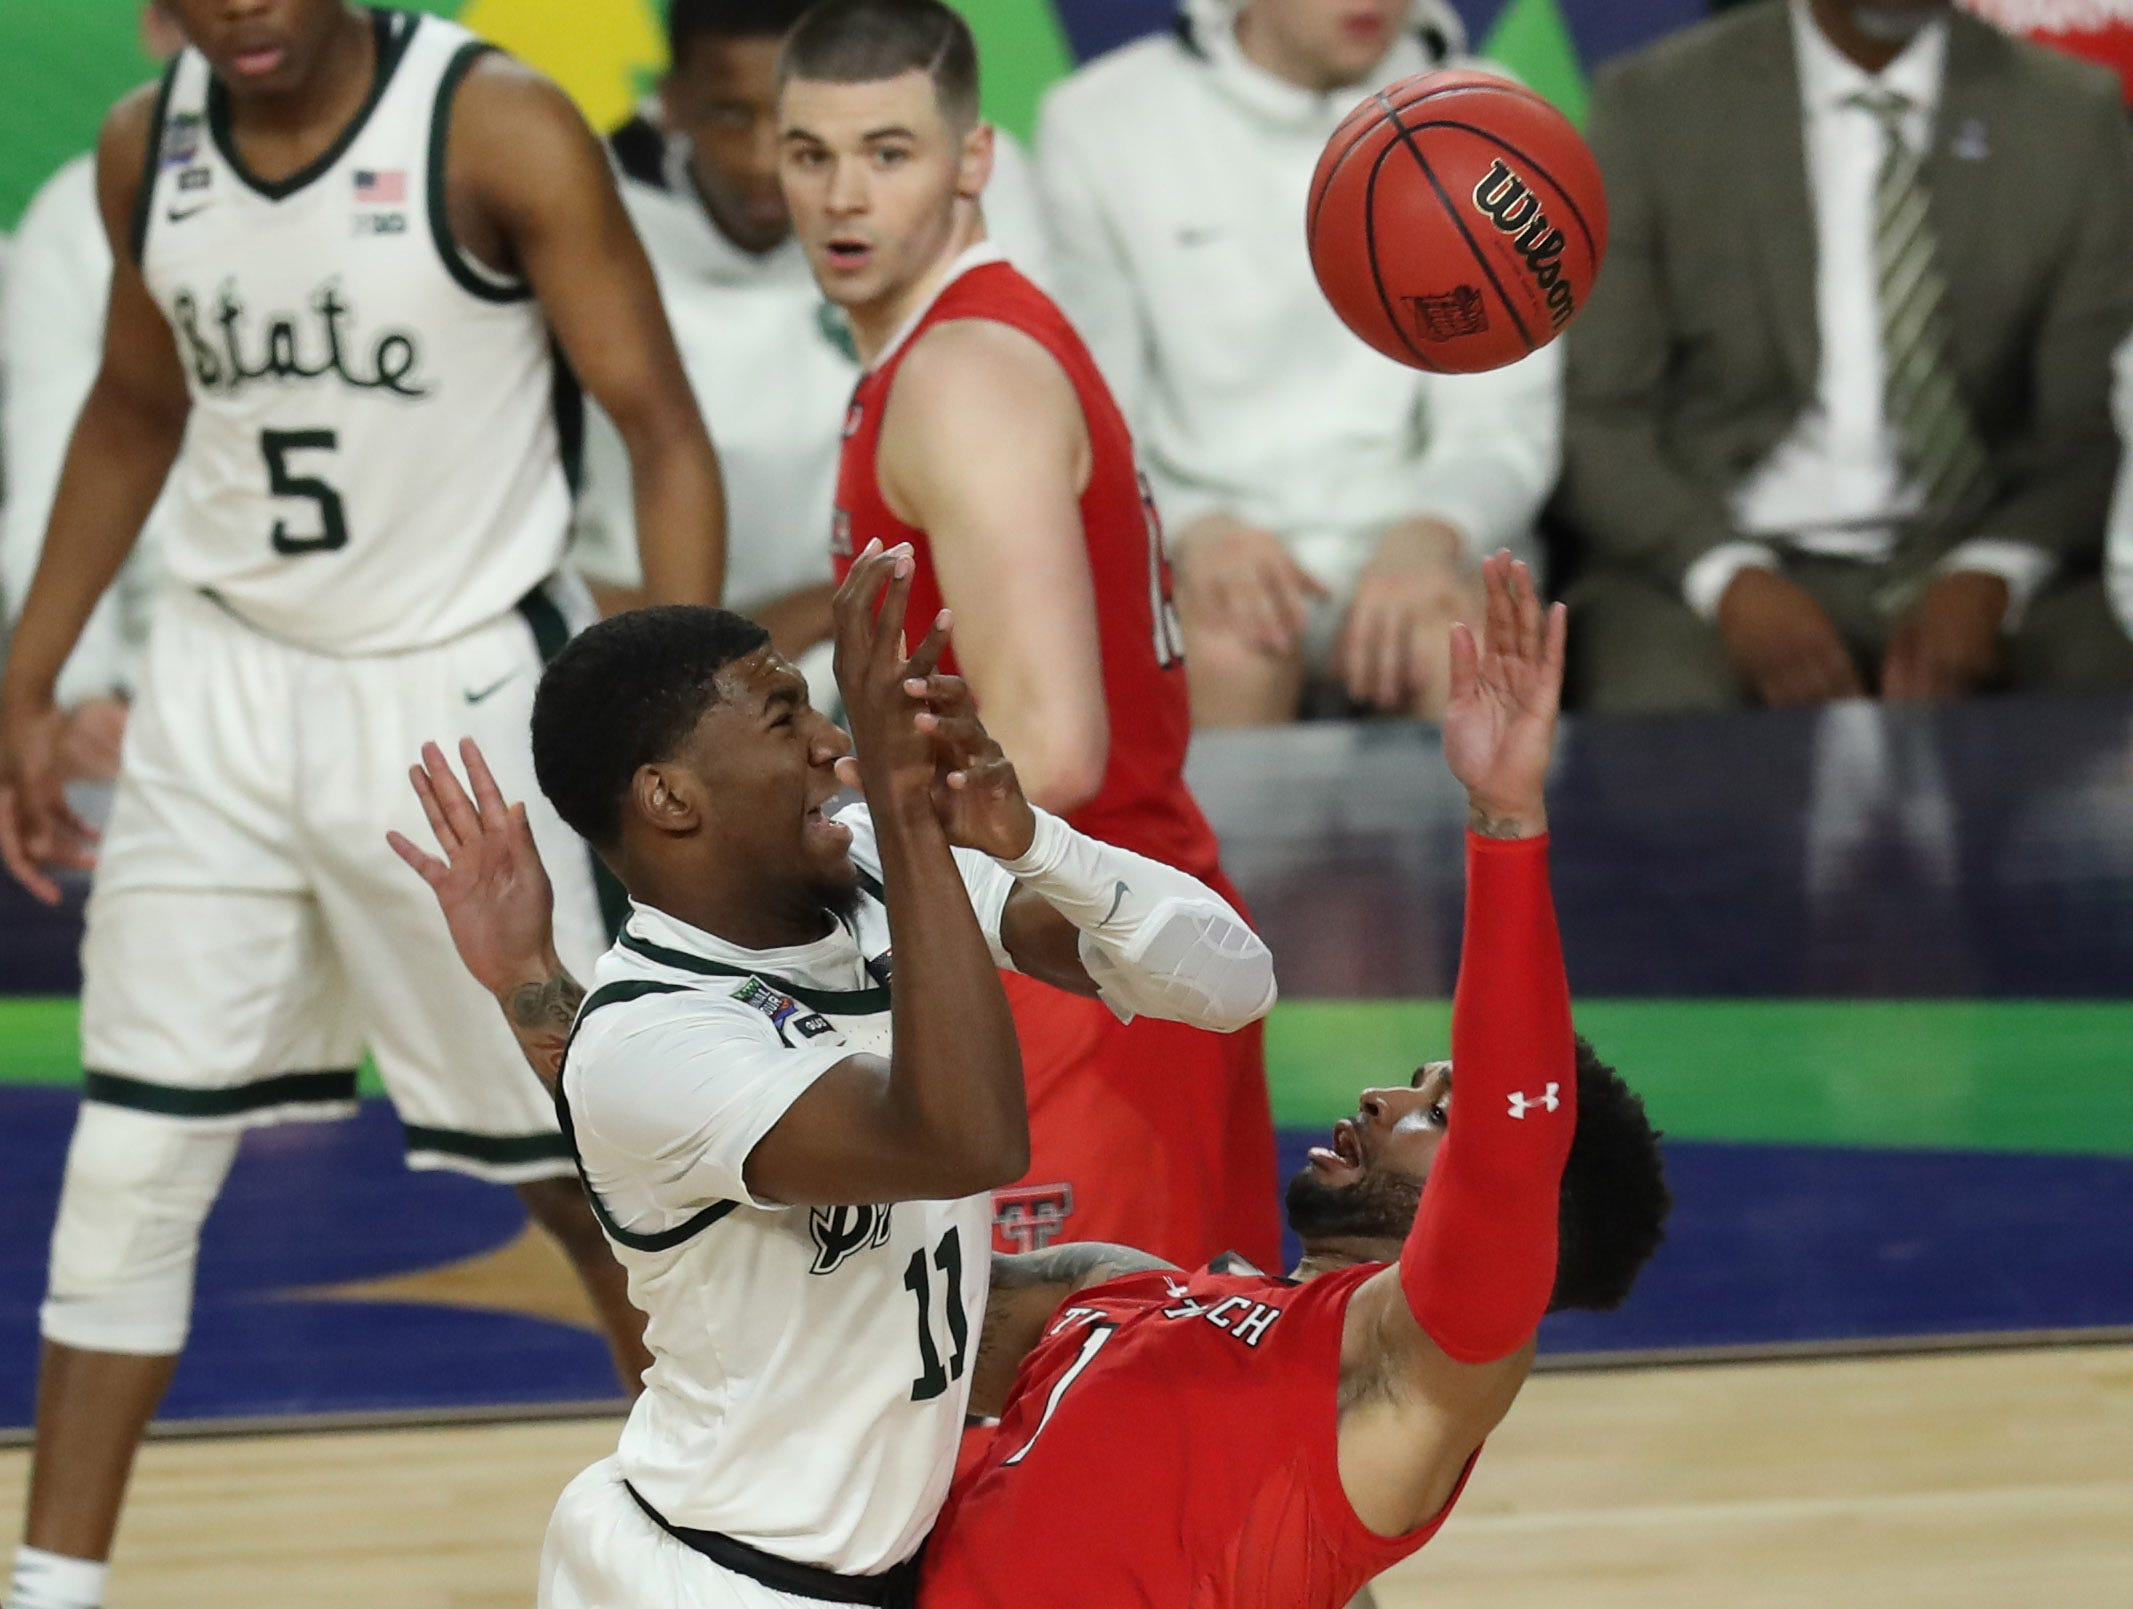 Apr 6, 2019; Minneapolis, MN, USA; Michigan State Spartans guard Matt McQuaid (20) attempts a shot over Texas Tech Red Raiders guard Brandone Francis (1) during the second half in the semifinals of the 2019 men's Final Four at US Bank Stadium. Mandatory Credit: Brace Hemmelgarn-USA TODAY Sports